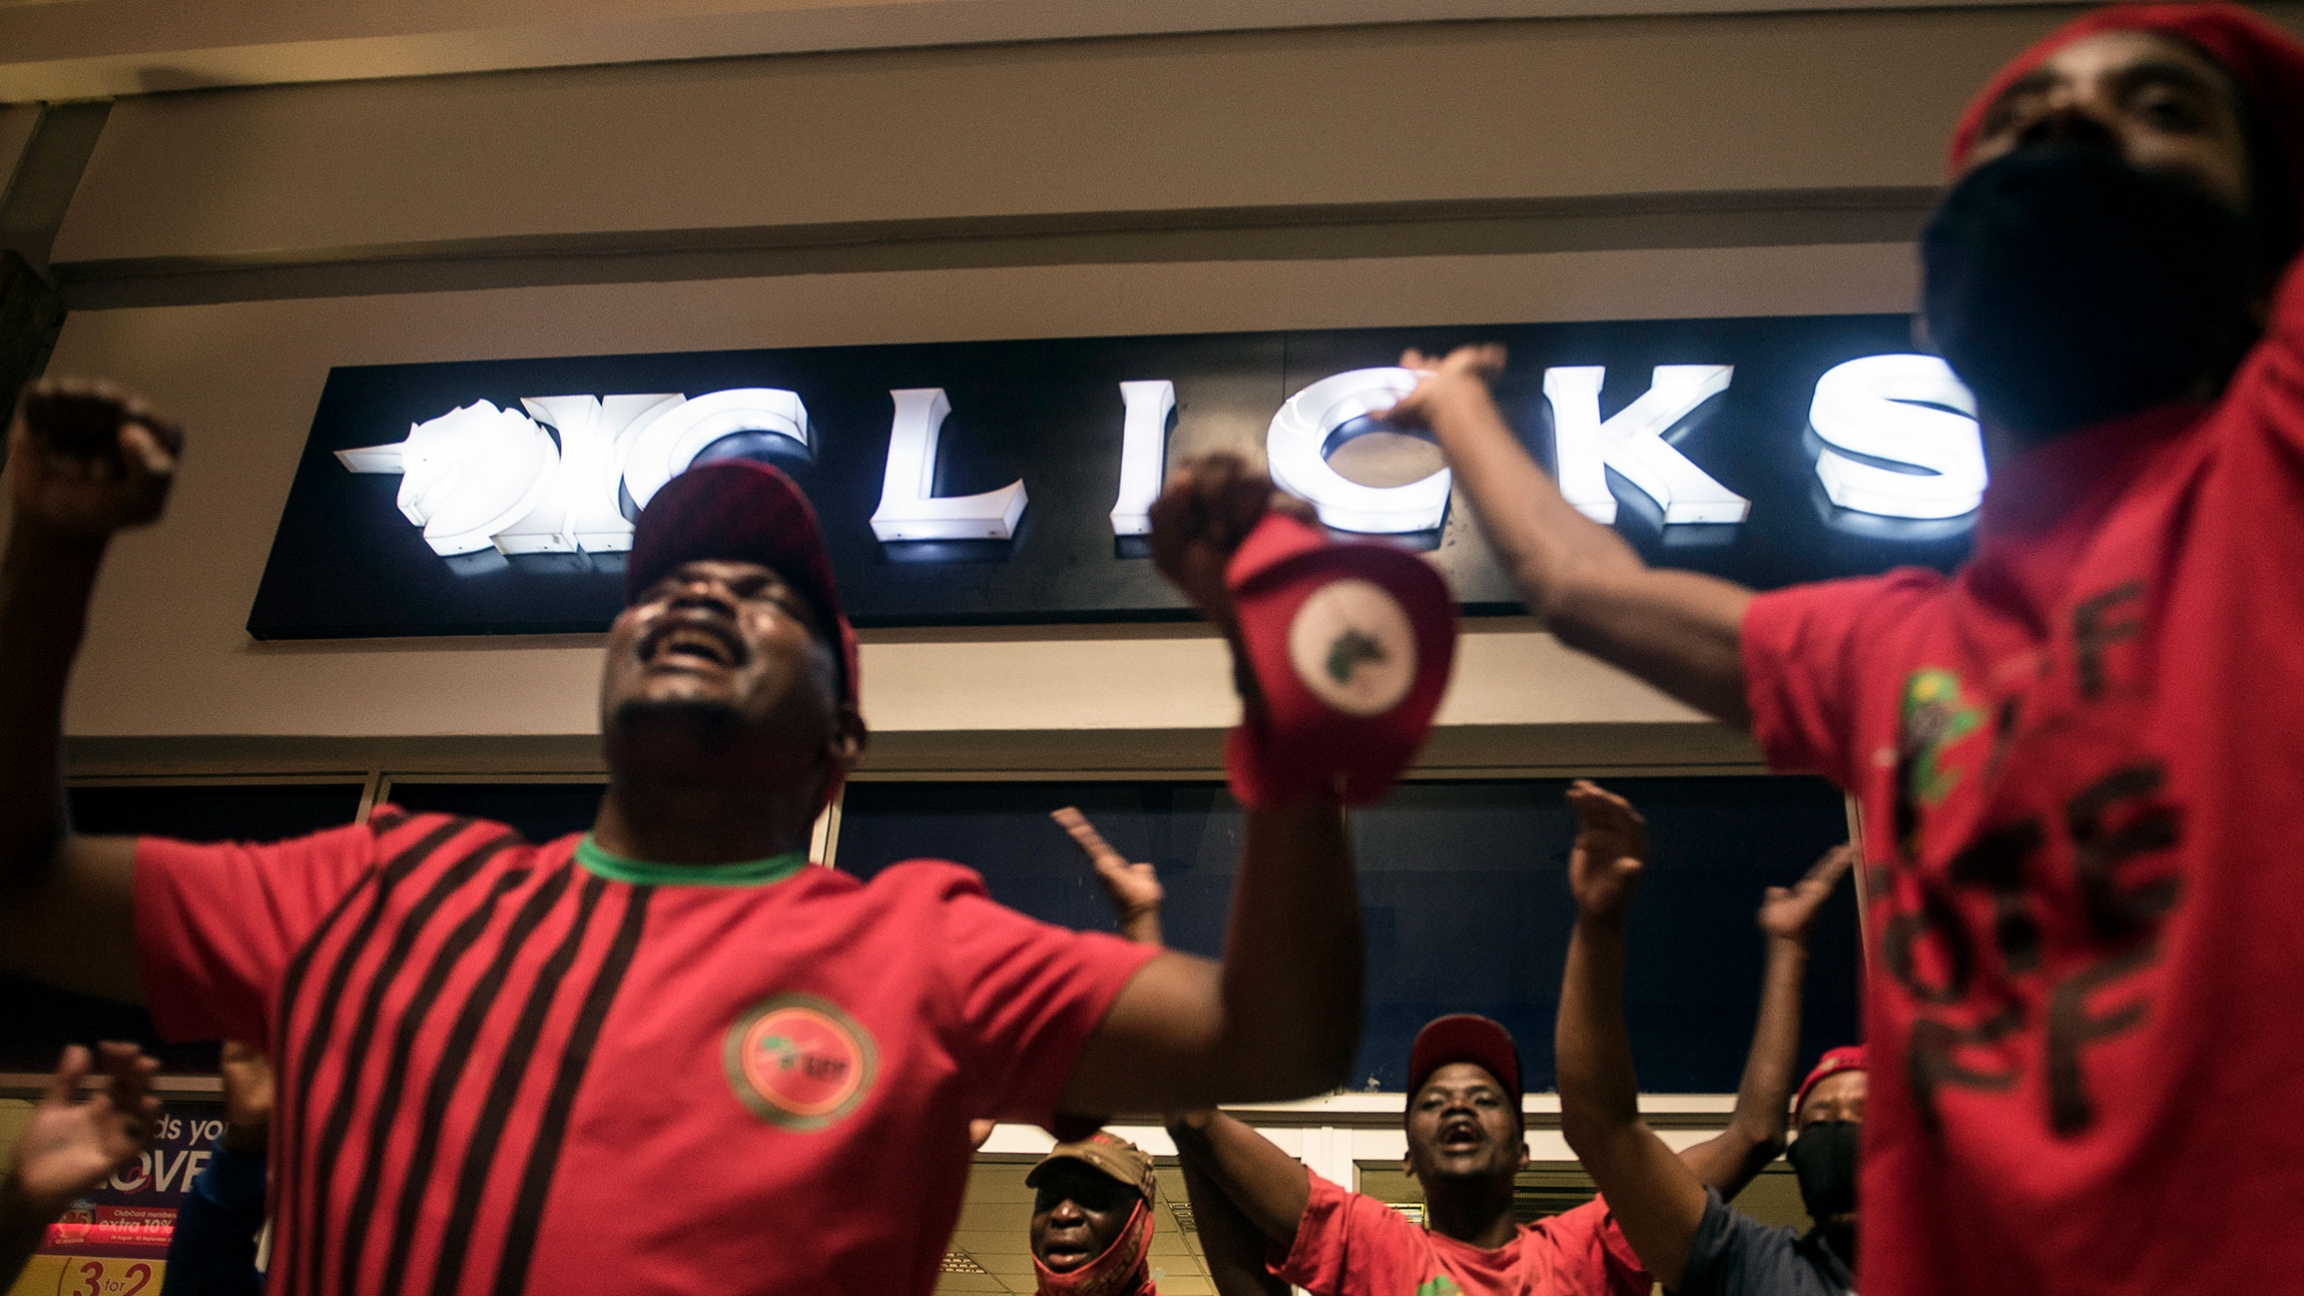 A group of people are shown protesting outside of a Clicks story with their hands raised.